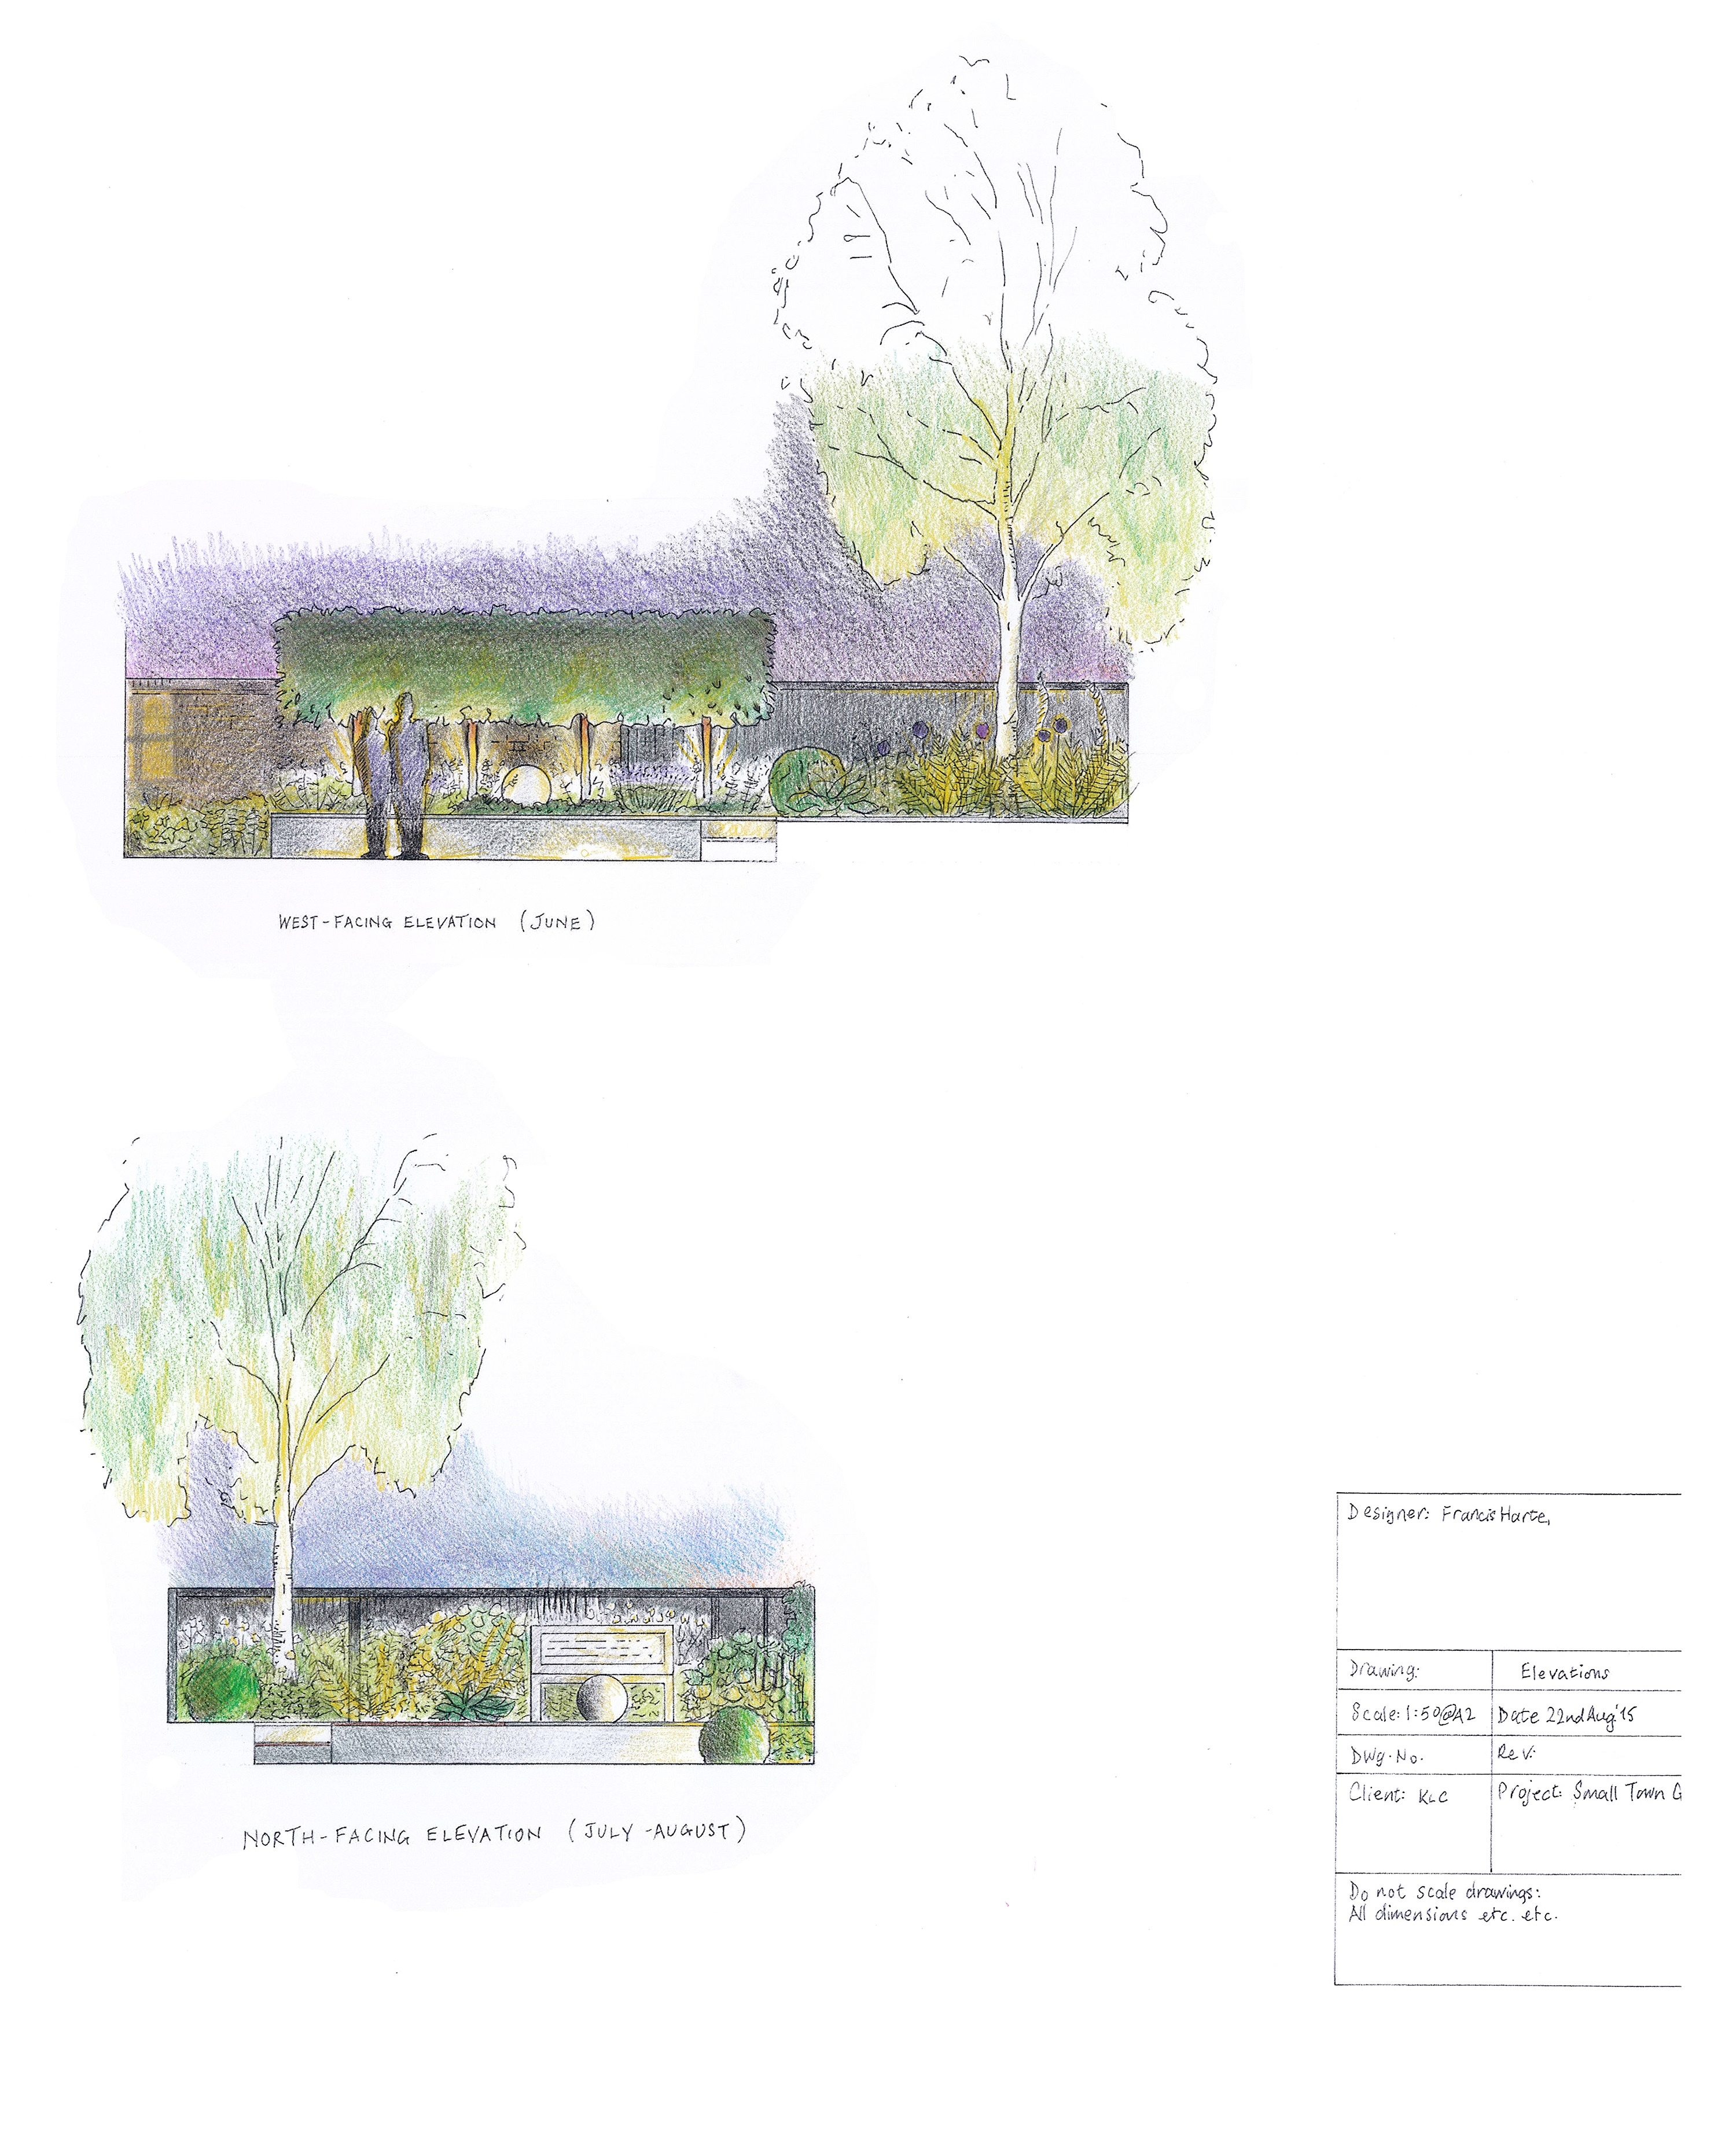 3.2 Small Town Garden Elevations by Francis Harte